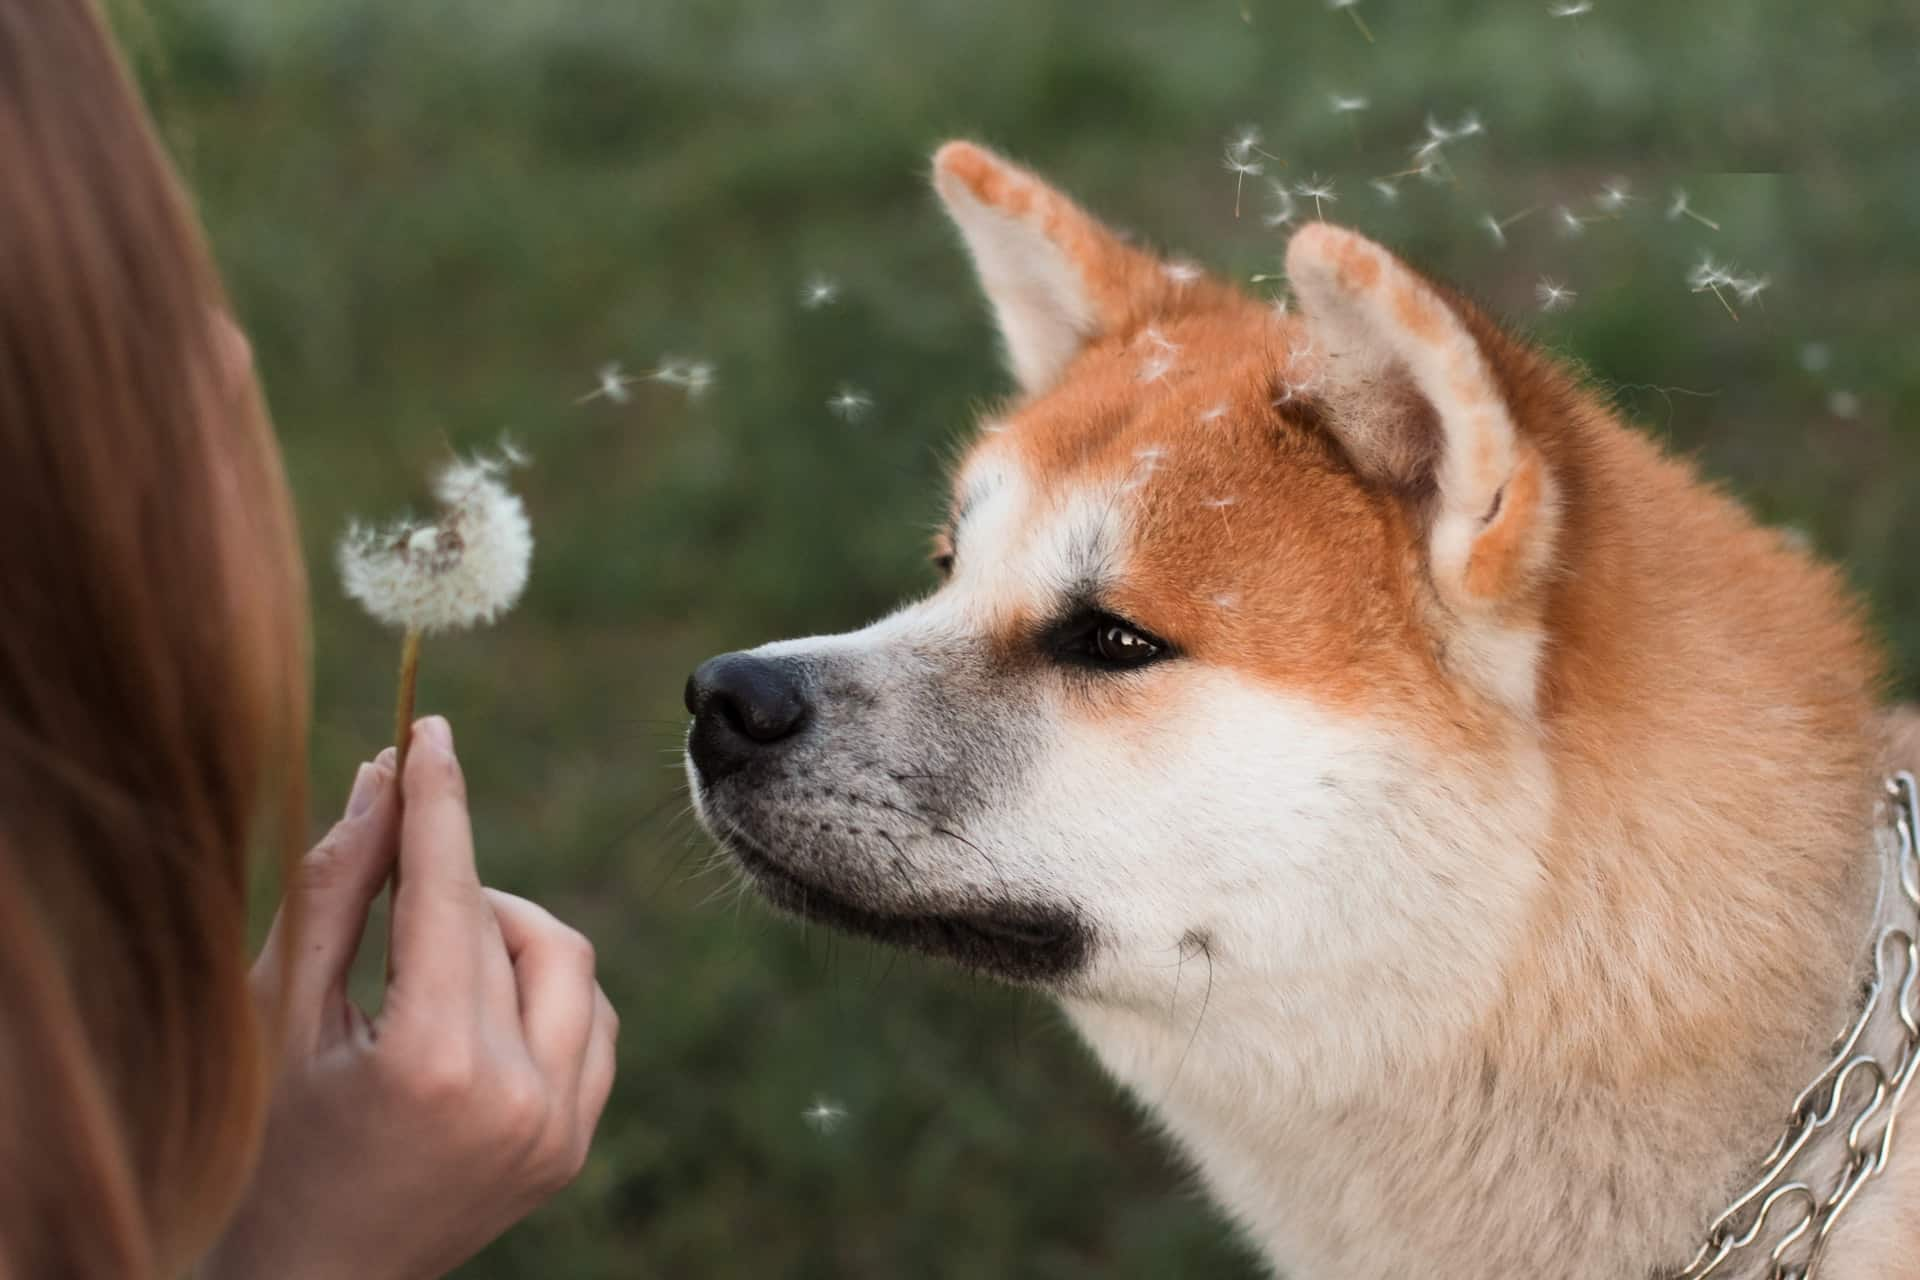 an owner blowing a dandelion towards her dog